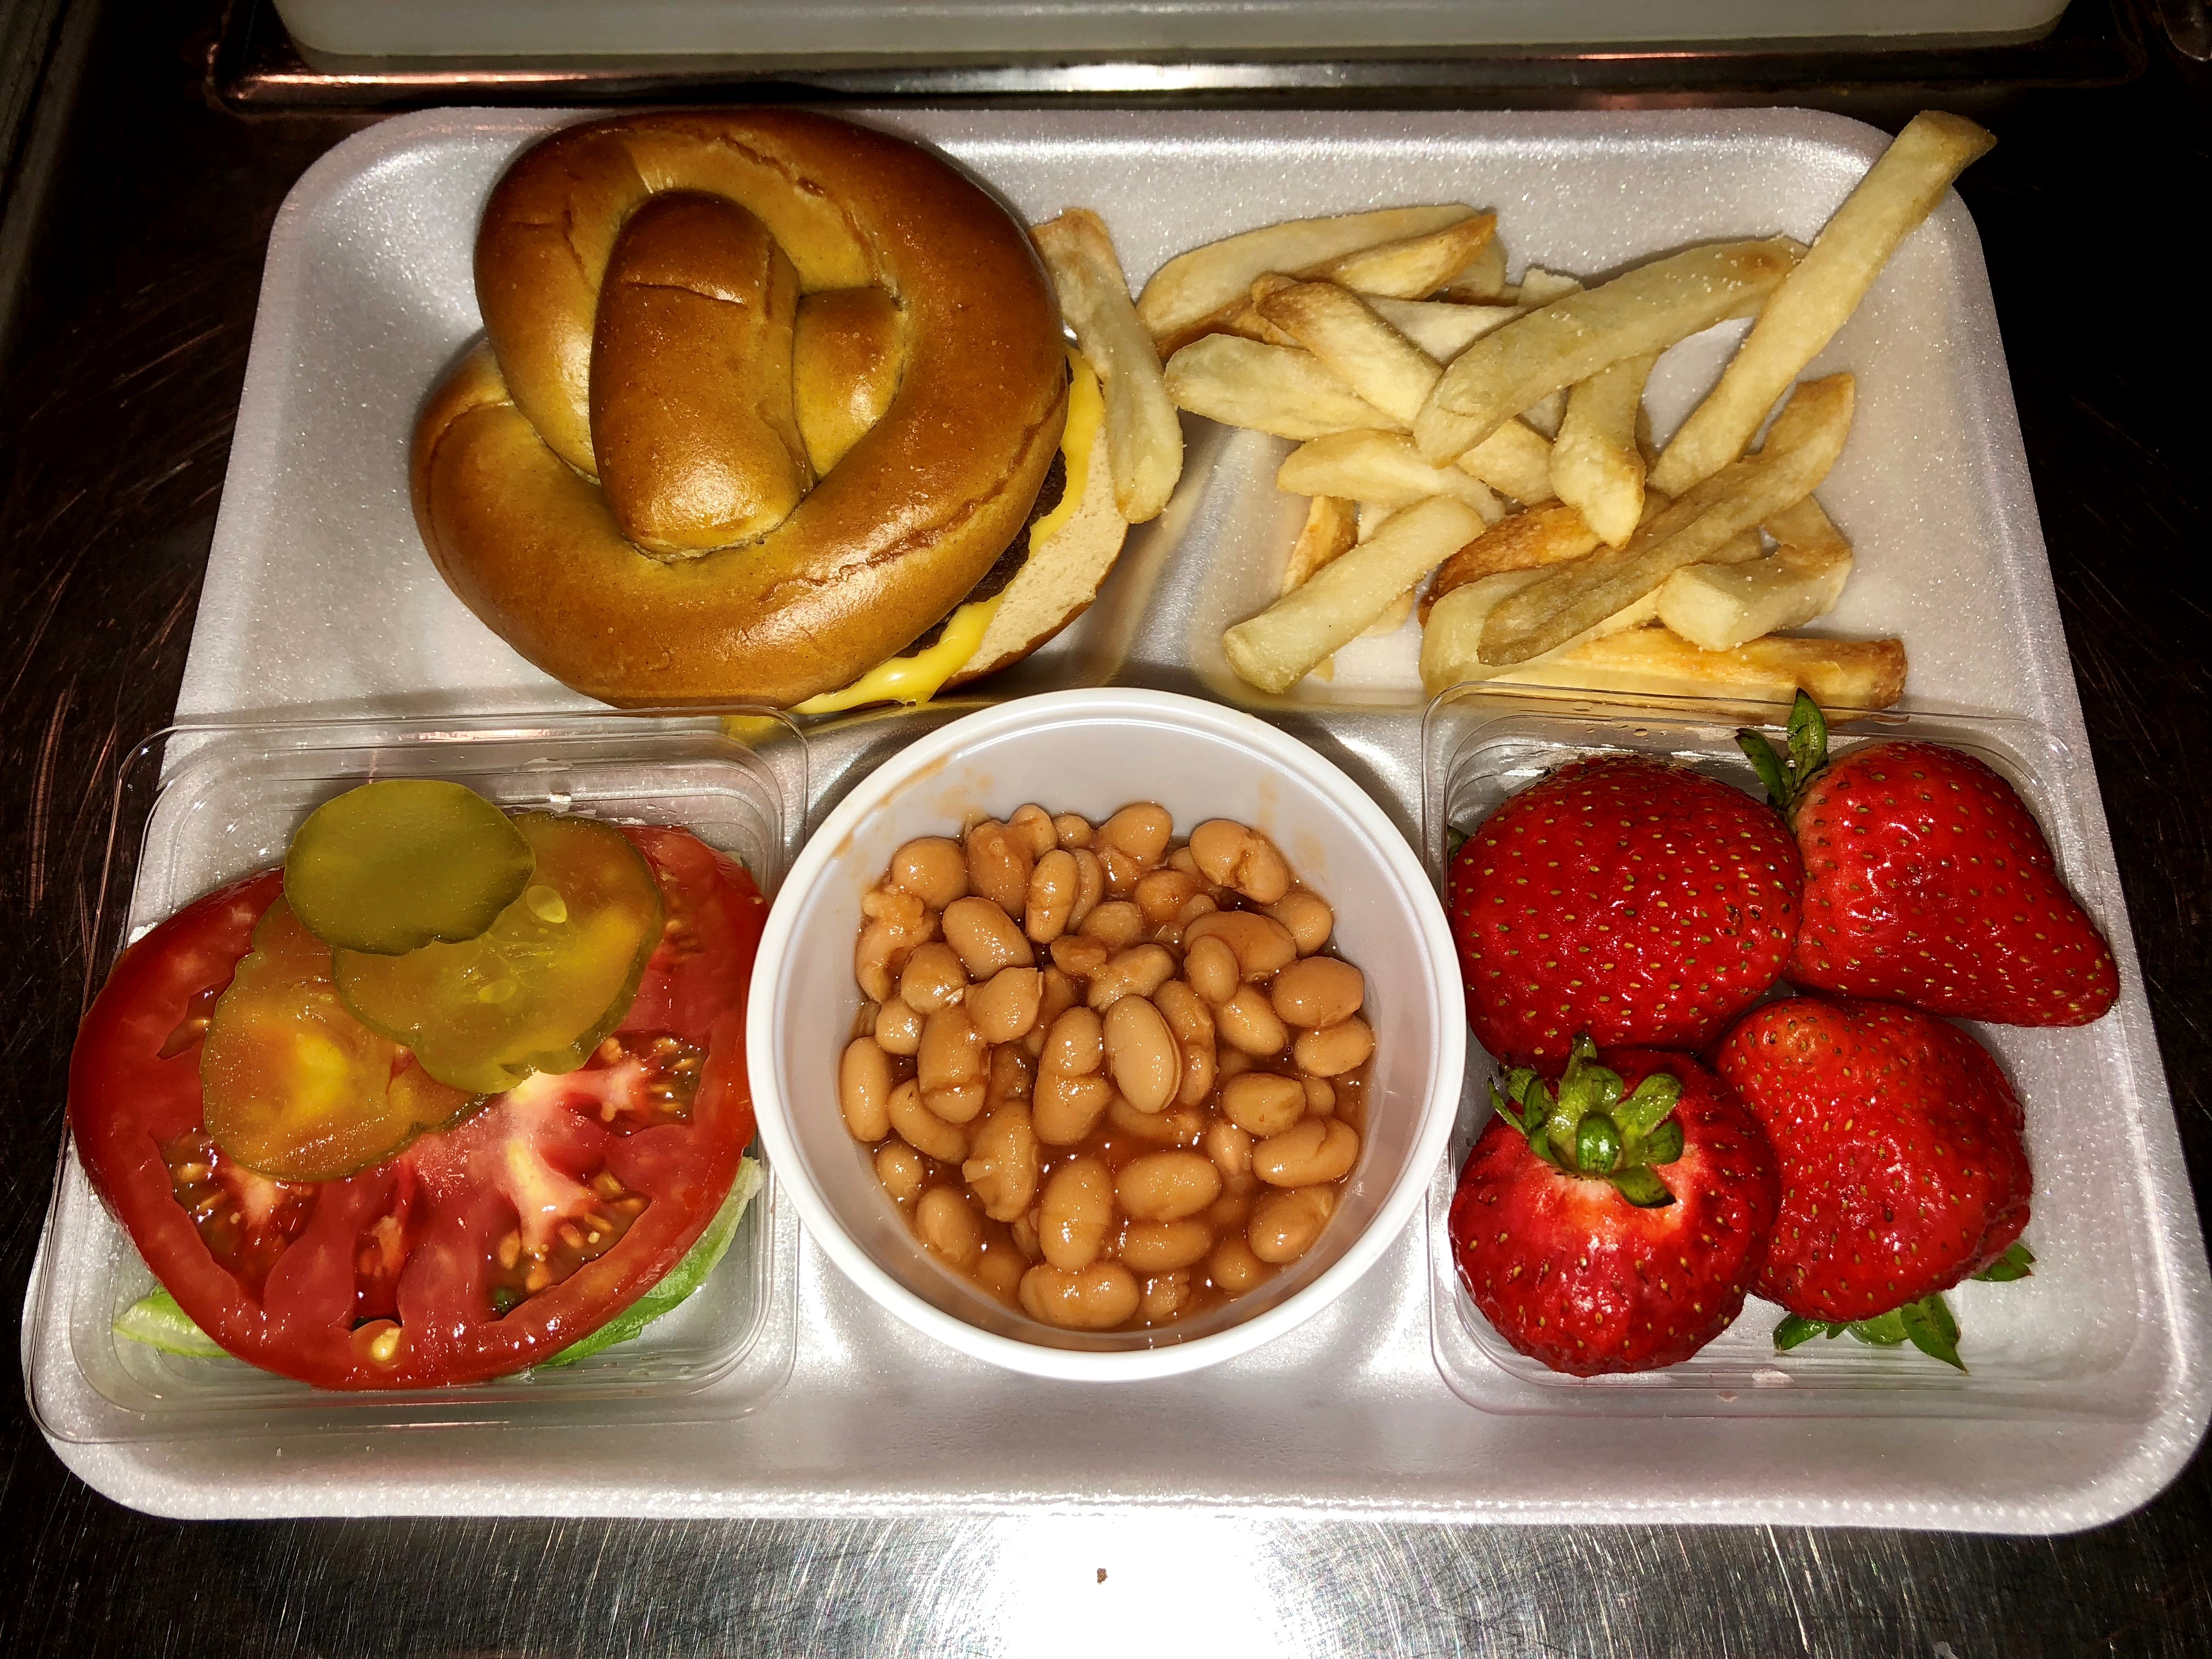 Food Services & Nutrition